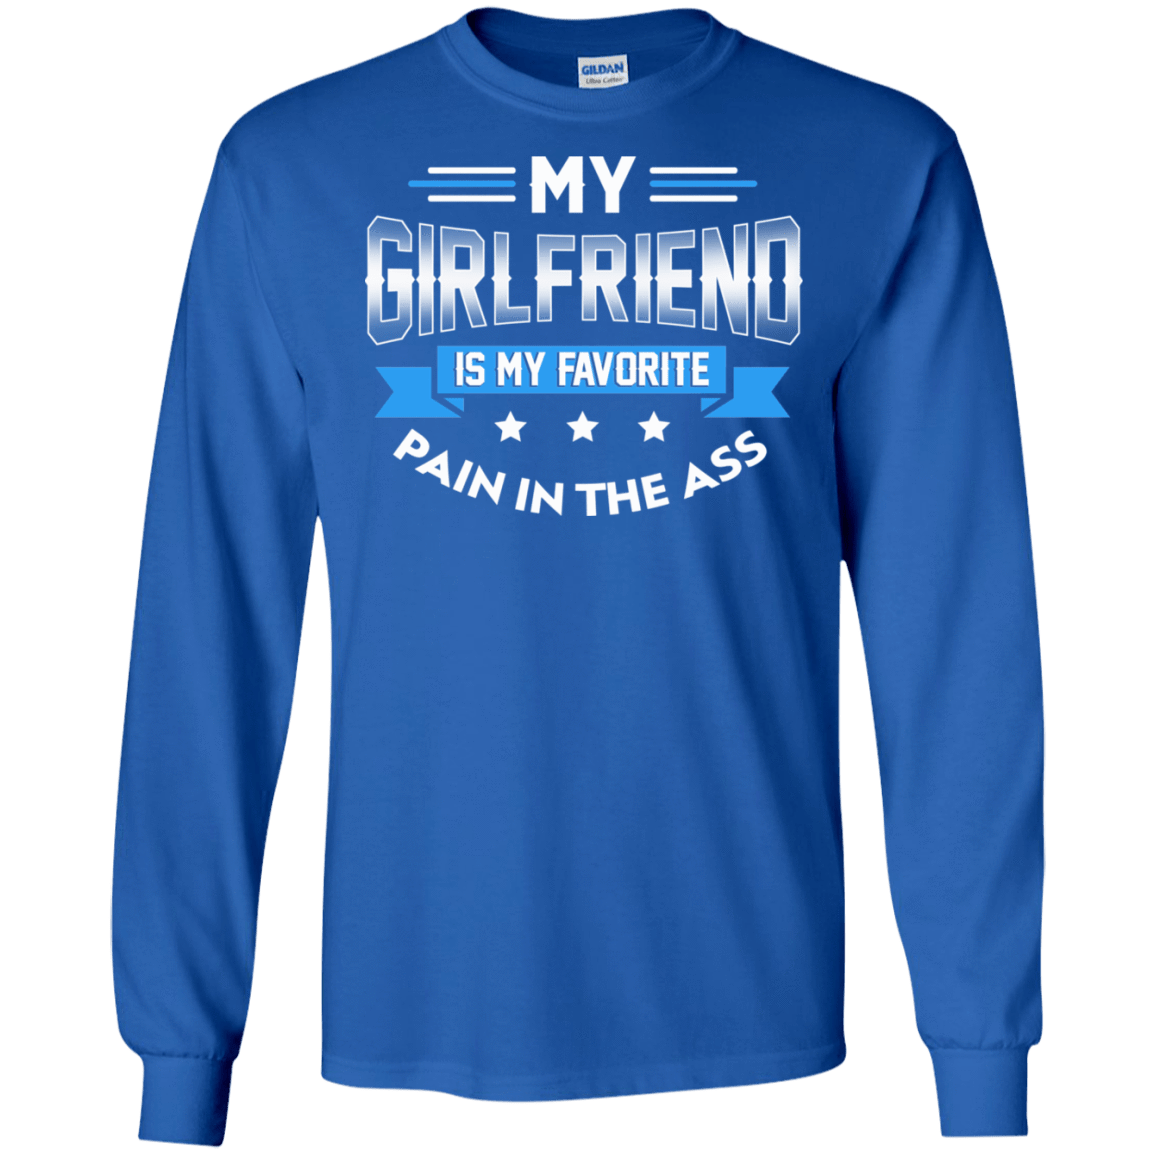 My Girlfriend Is My Favorite Pain In The Ass 30-183-73428844-330 - Tee Ript